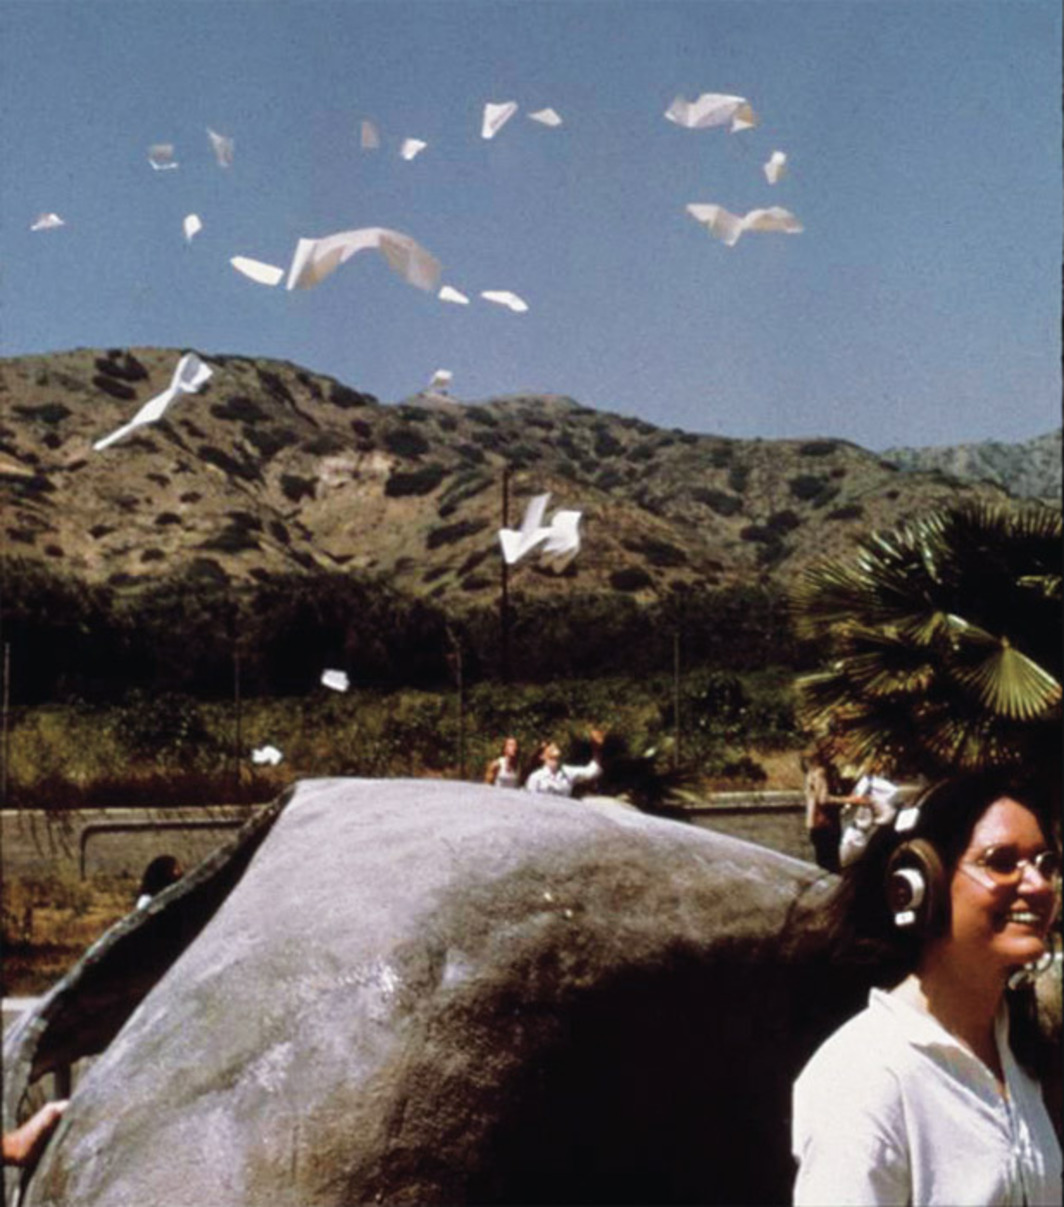 Alison Knowles (in collaboration with CalArts students Norman Kaplan and Richard Banks), Poem Drop, 1971. Performance view, CalArts campus, Burbank, CA, 1971. Foreground: Knowles in front of House of Dust, 1968.